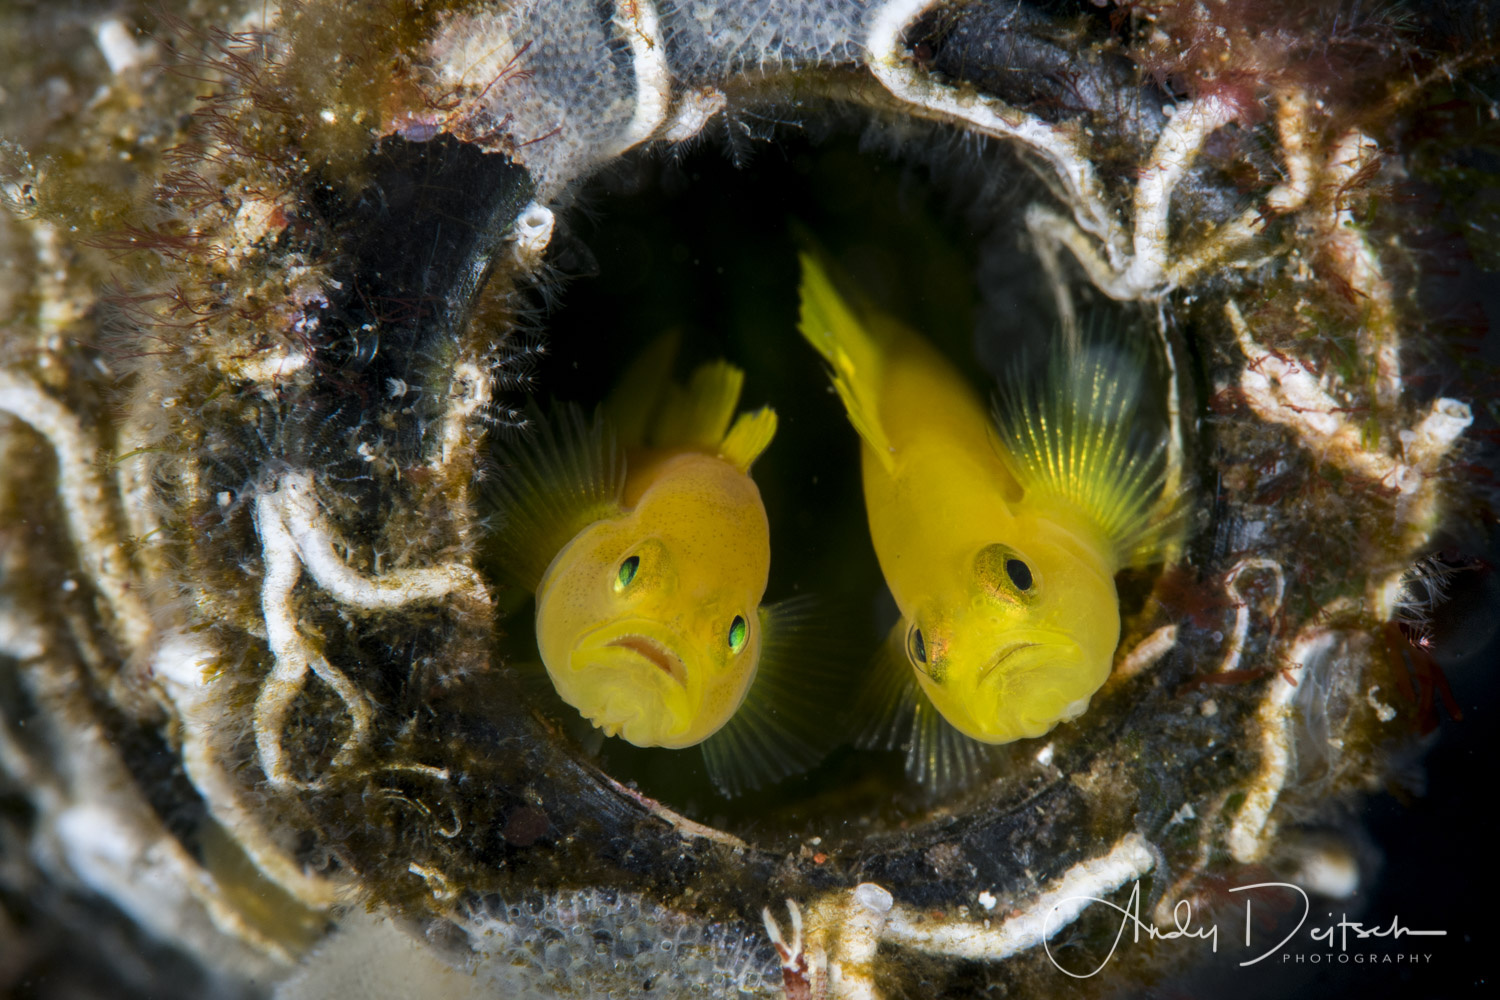 Ornate Gobies by Andy Deitsch